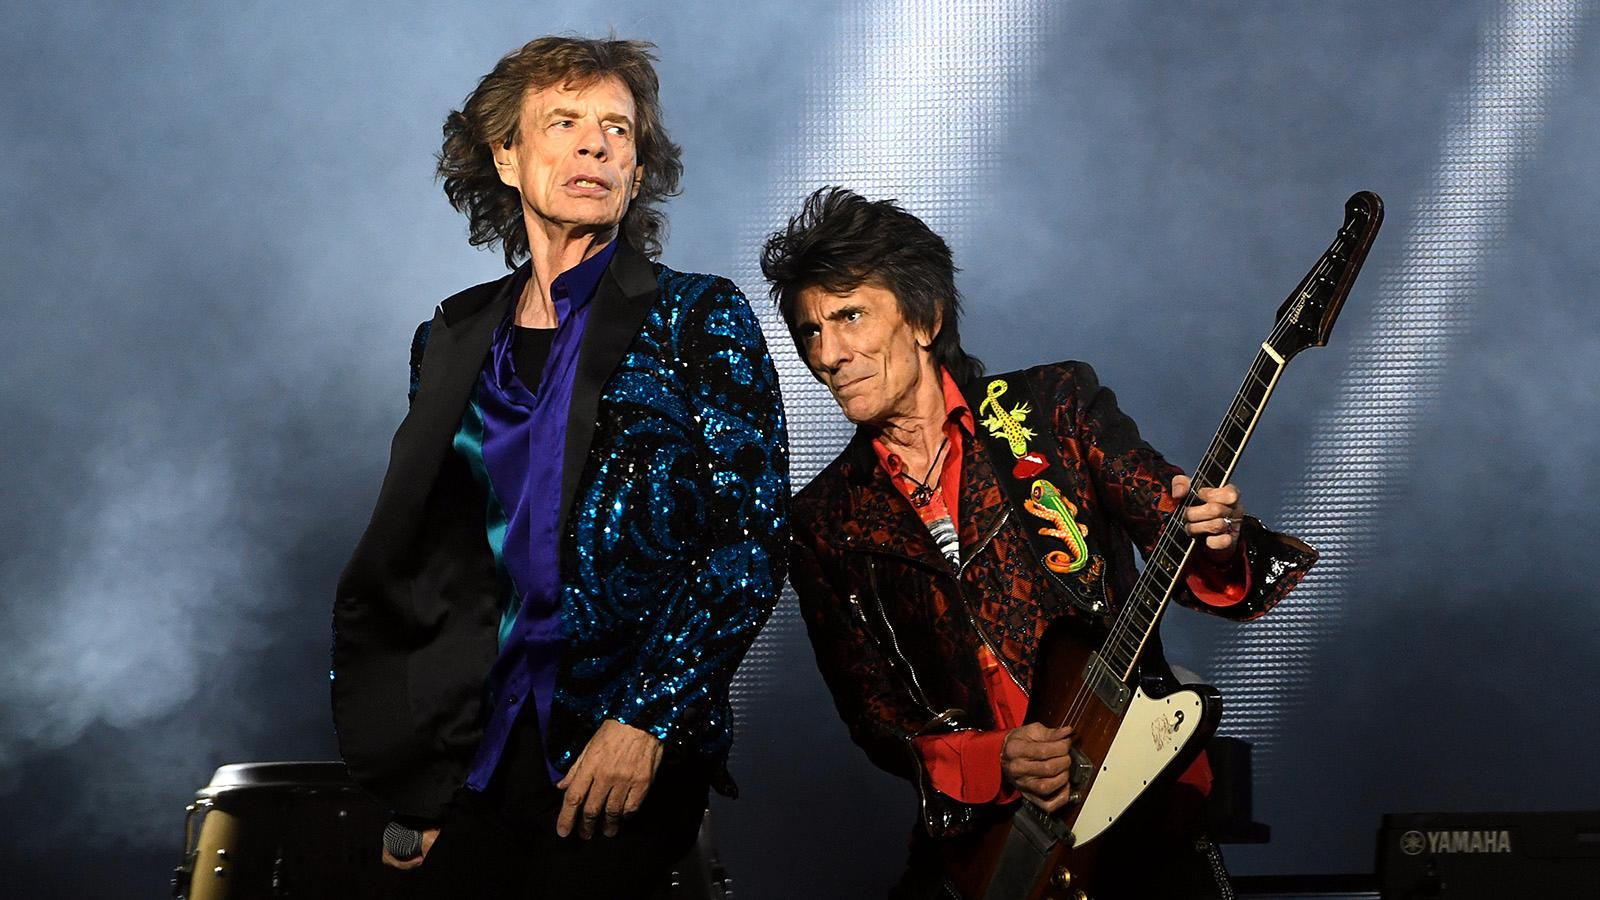 Mick Jagger och Ronnie Wood i The Rolling stones.